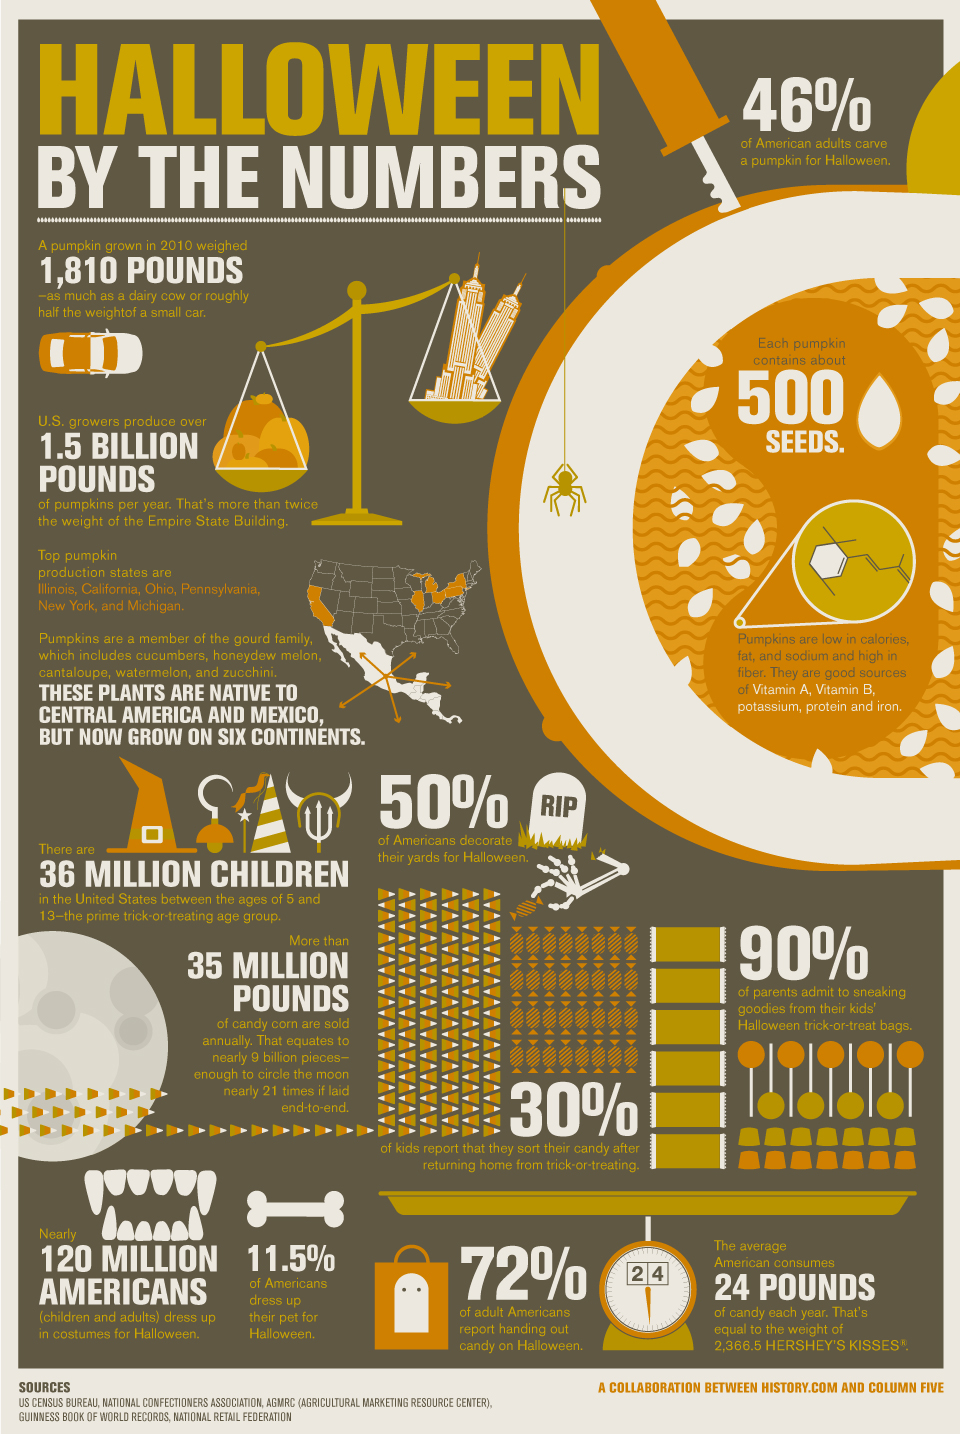 Halloween By the Numbers. (2013).  The History Channel website . Retrieved 10:50, October 31, 2013, from http://www.history.com/interactives/halloween-by-the-numbers.